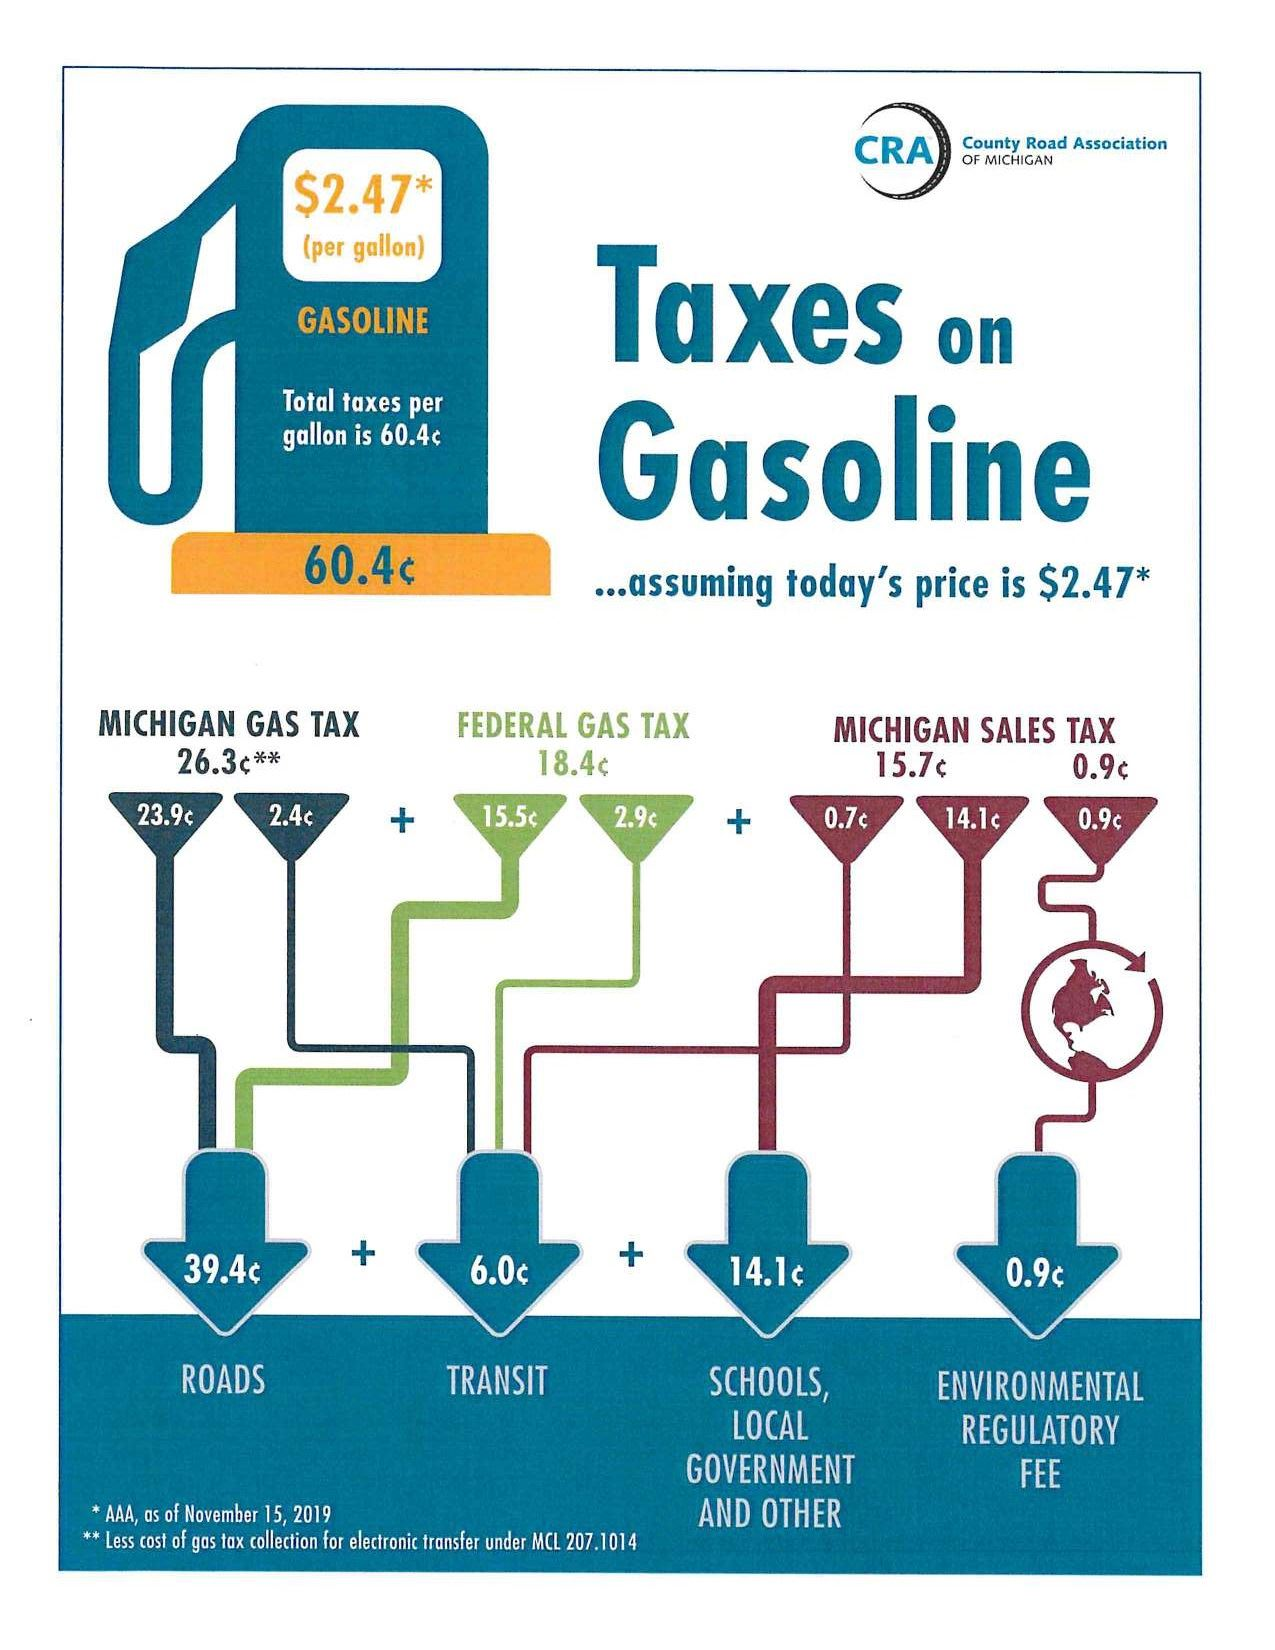 County Road Association Gas Tax image, breaks down taxes collected at the fuel pump